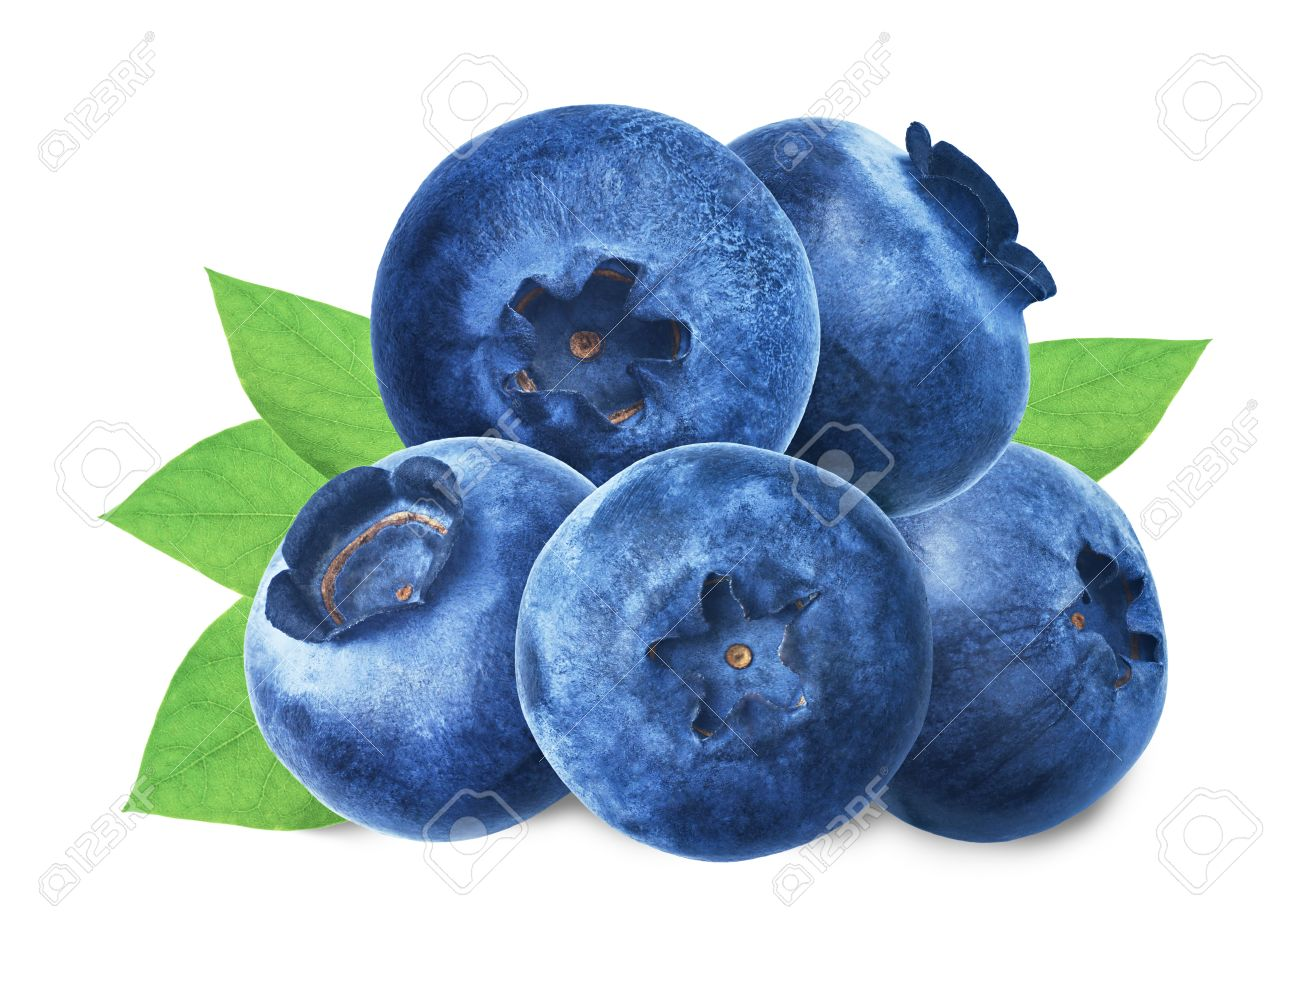 What is useful blueberries 38